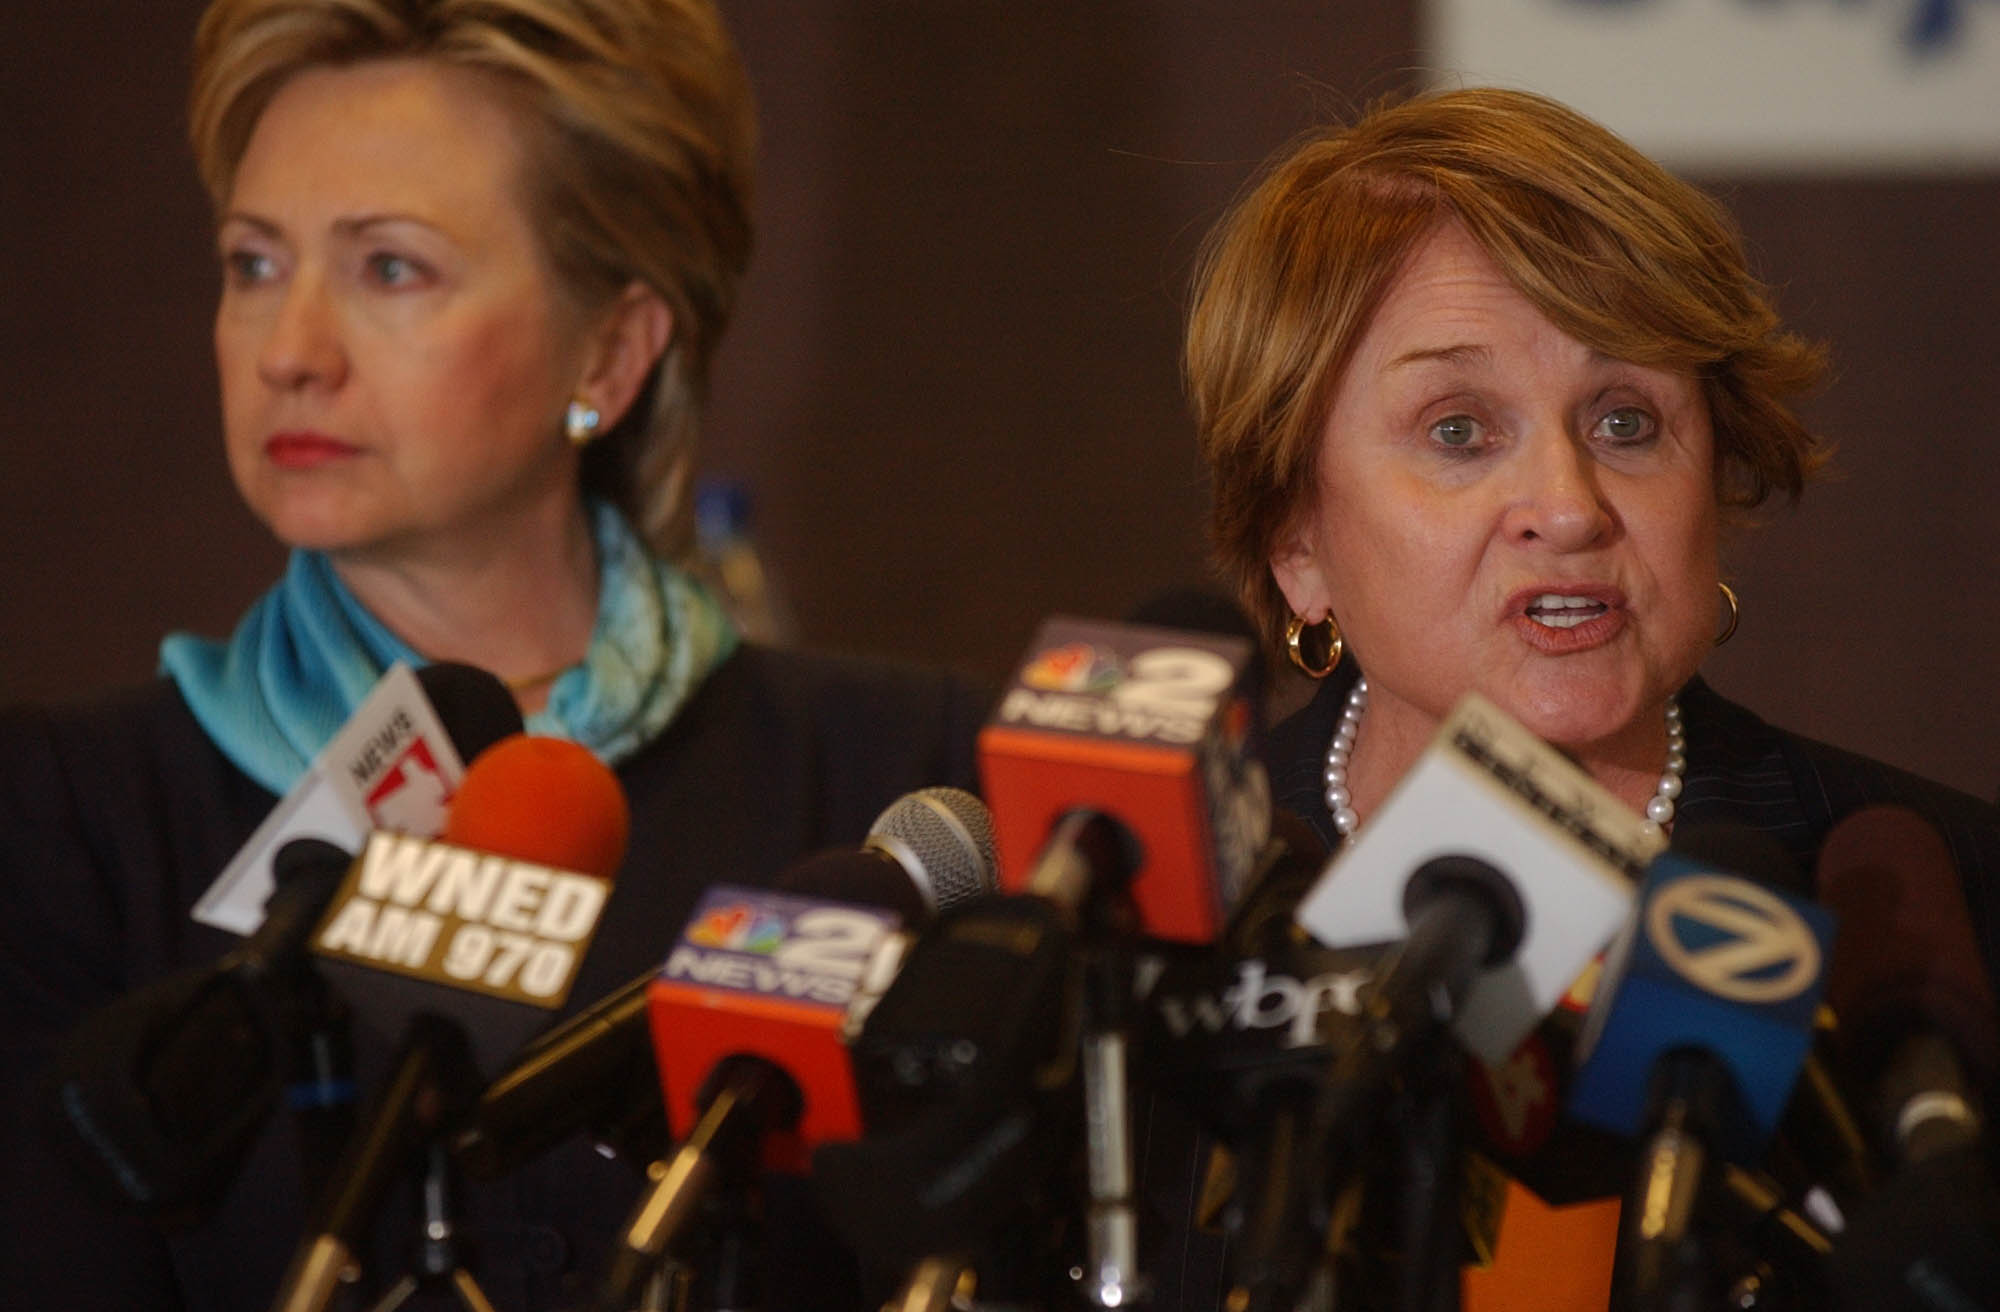 Congressman Louise Slaughter speaks during a press conference at the Niagara Falls International Airport with former Senator Hillary Clinton in 2005. (News file photo)